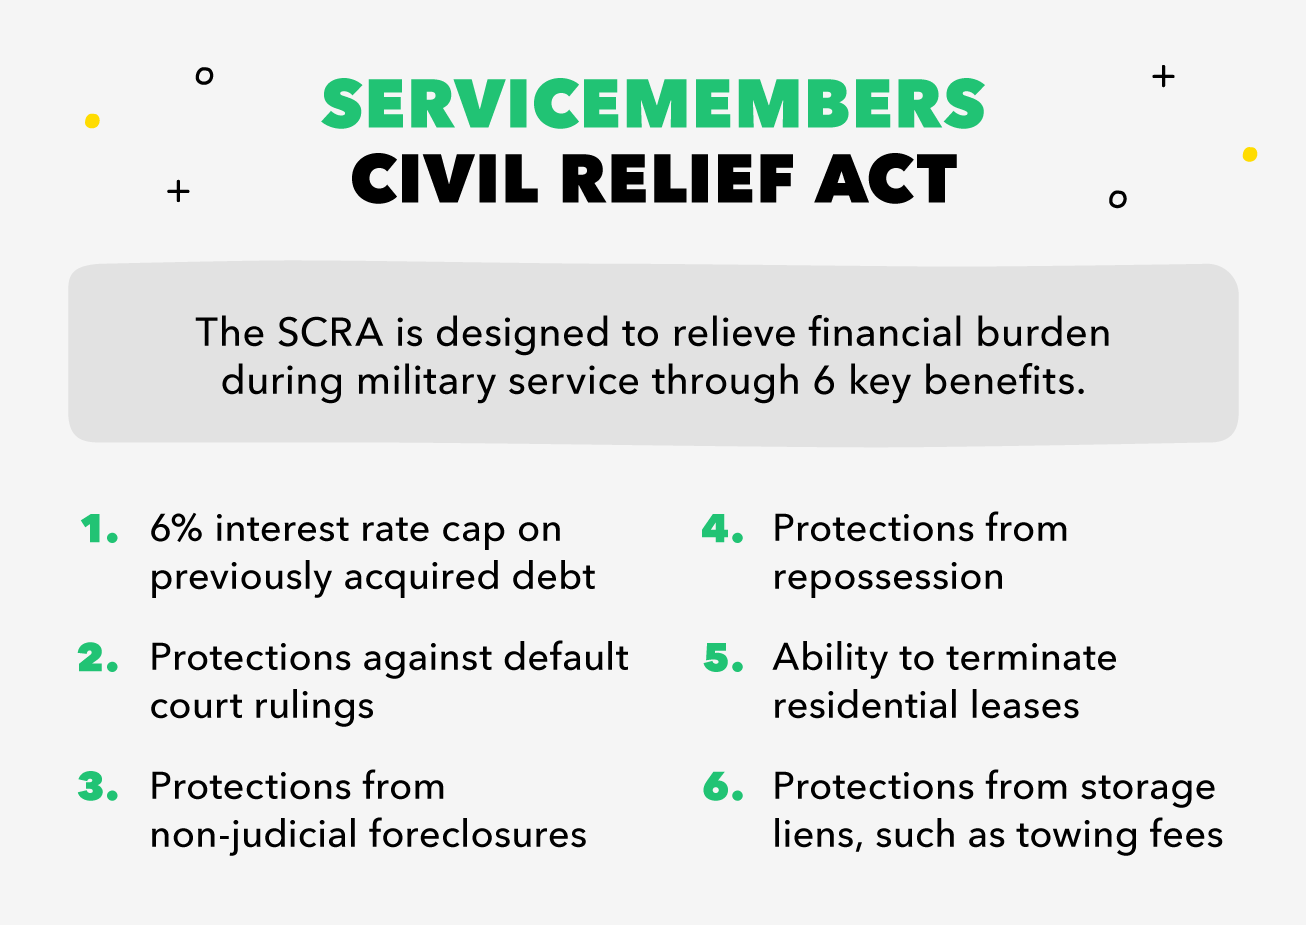 List of SCRA benefits for providing service members.